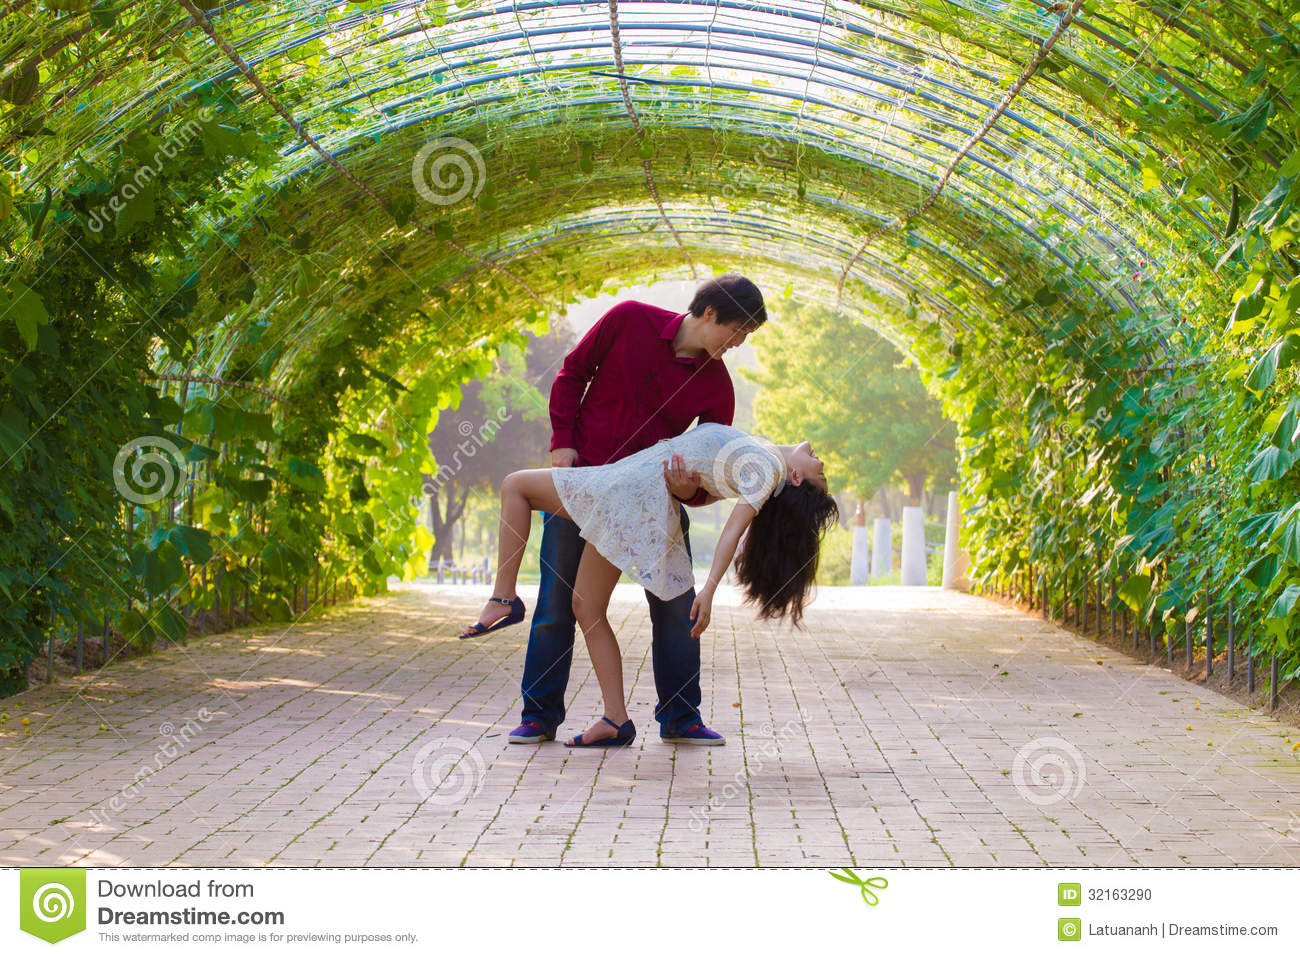 Couple dance in the green tunnel